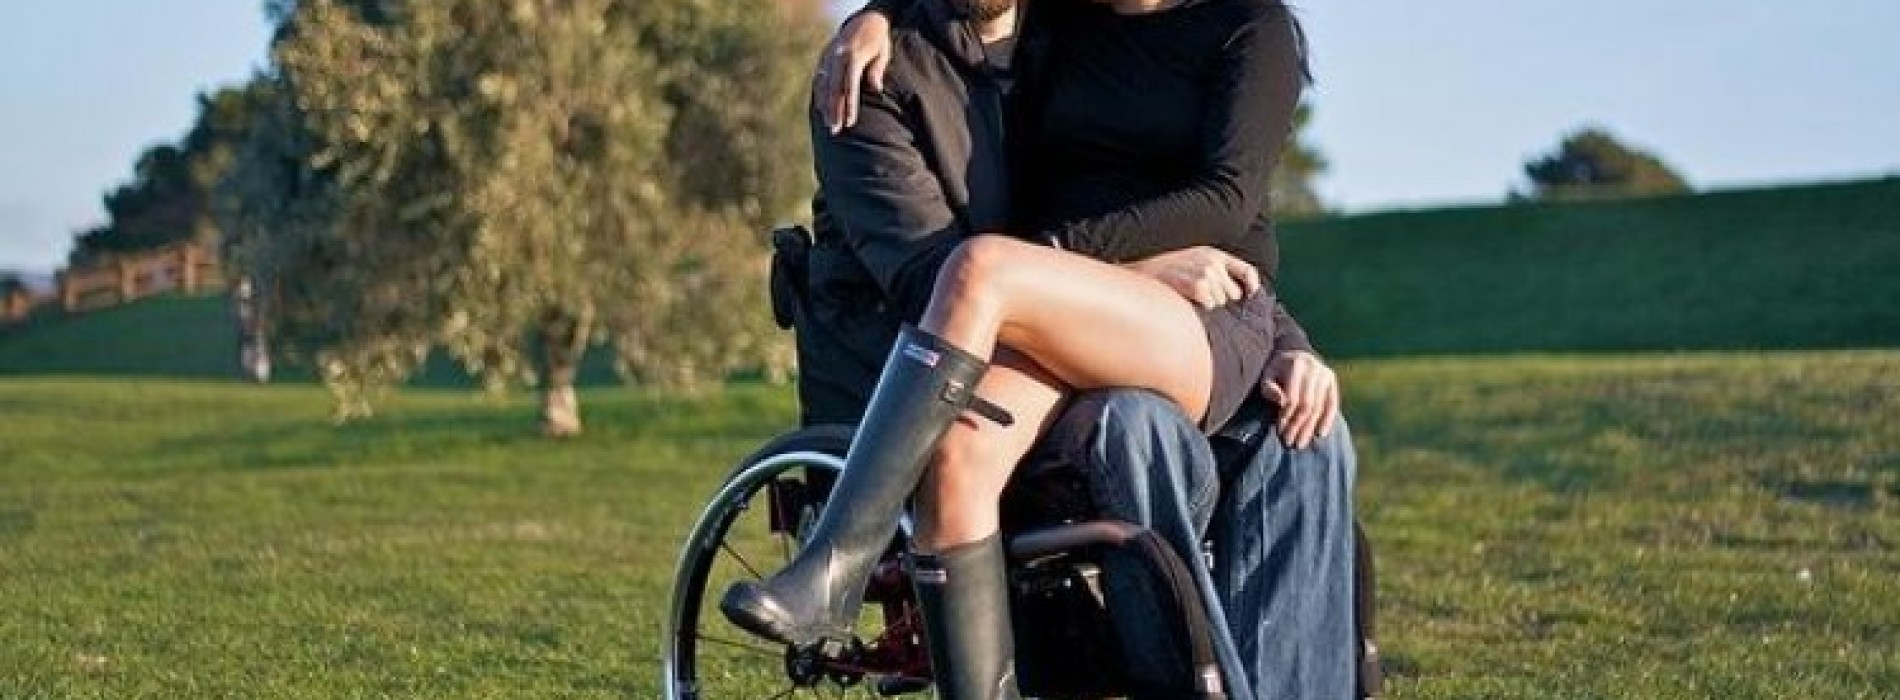 Disability, sex and relationships: condoms